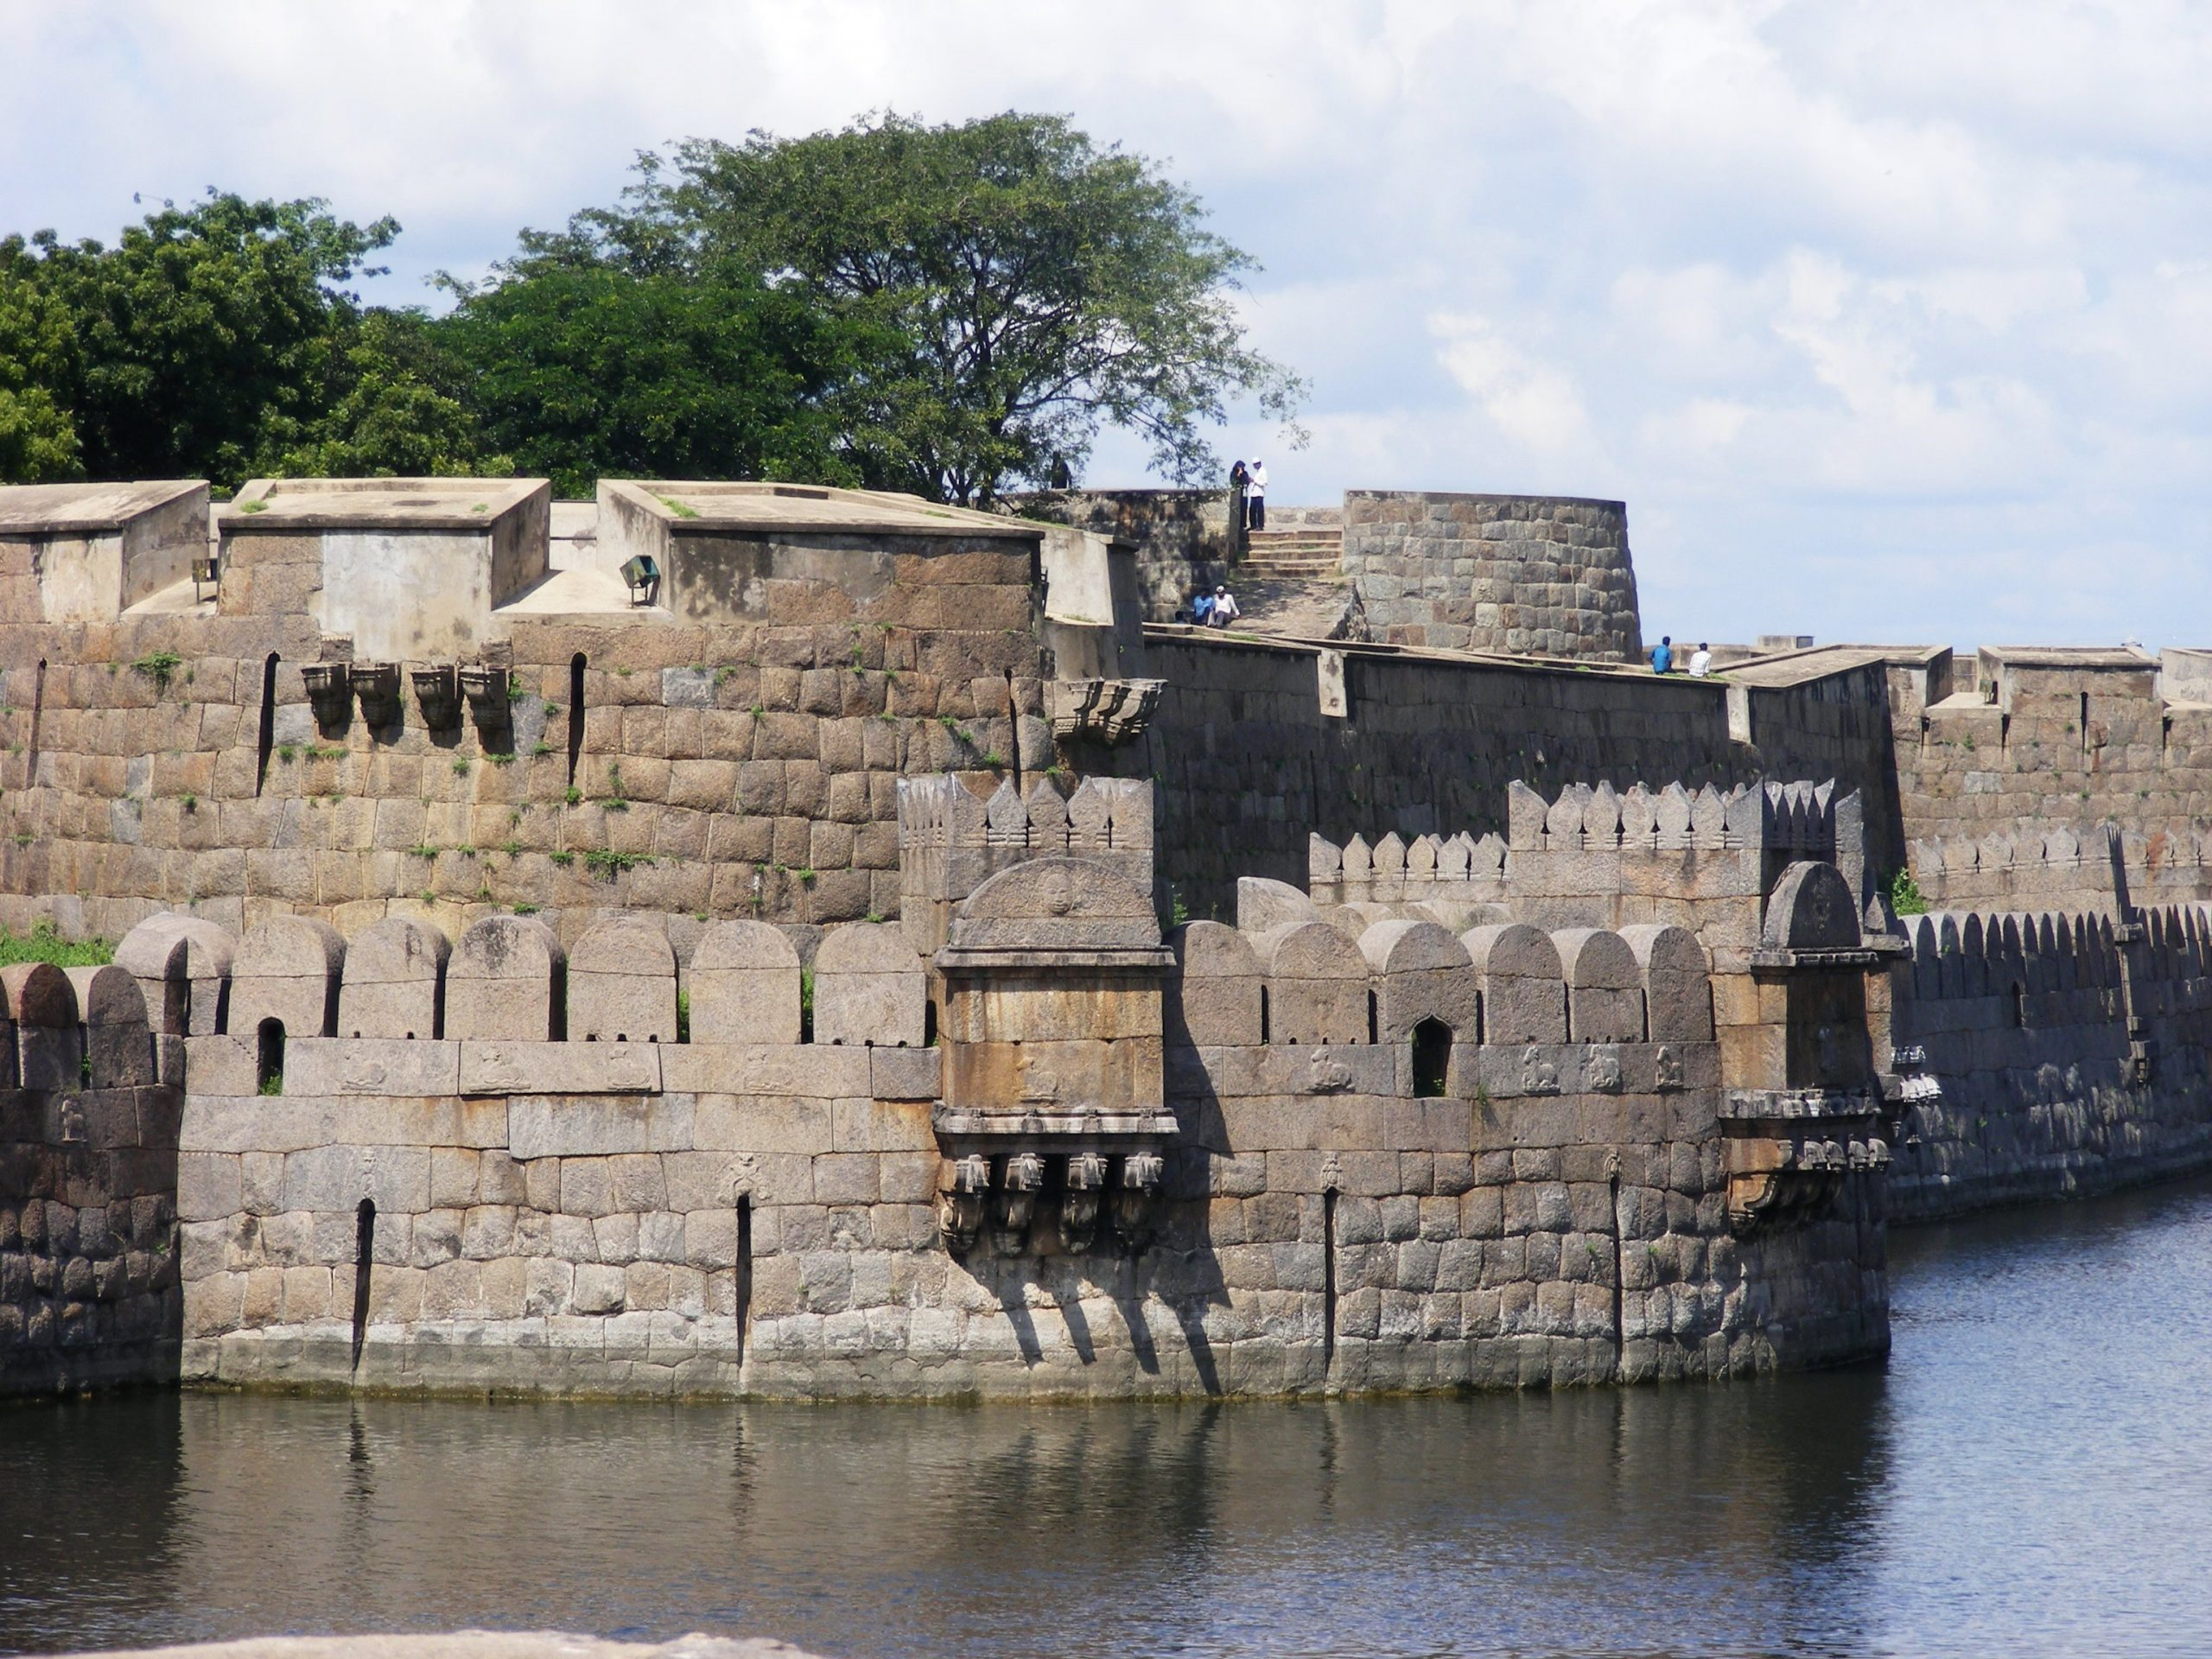 When Is The Best Time To Visit The Vellore Fort?